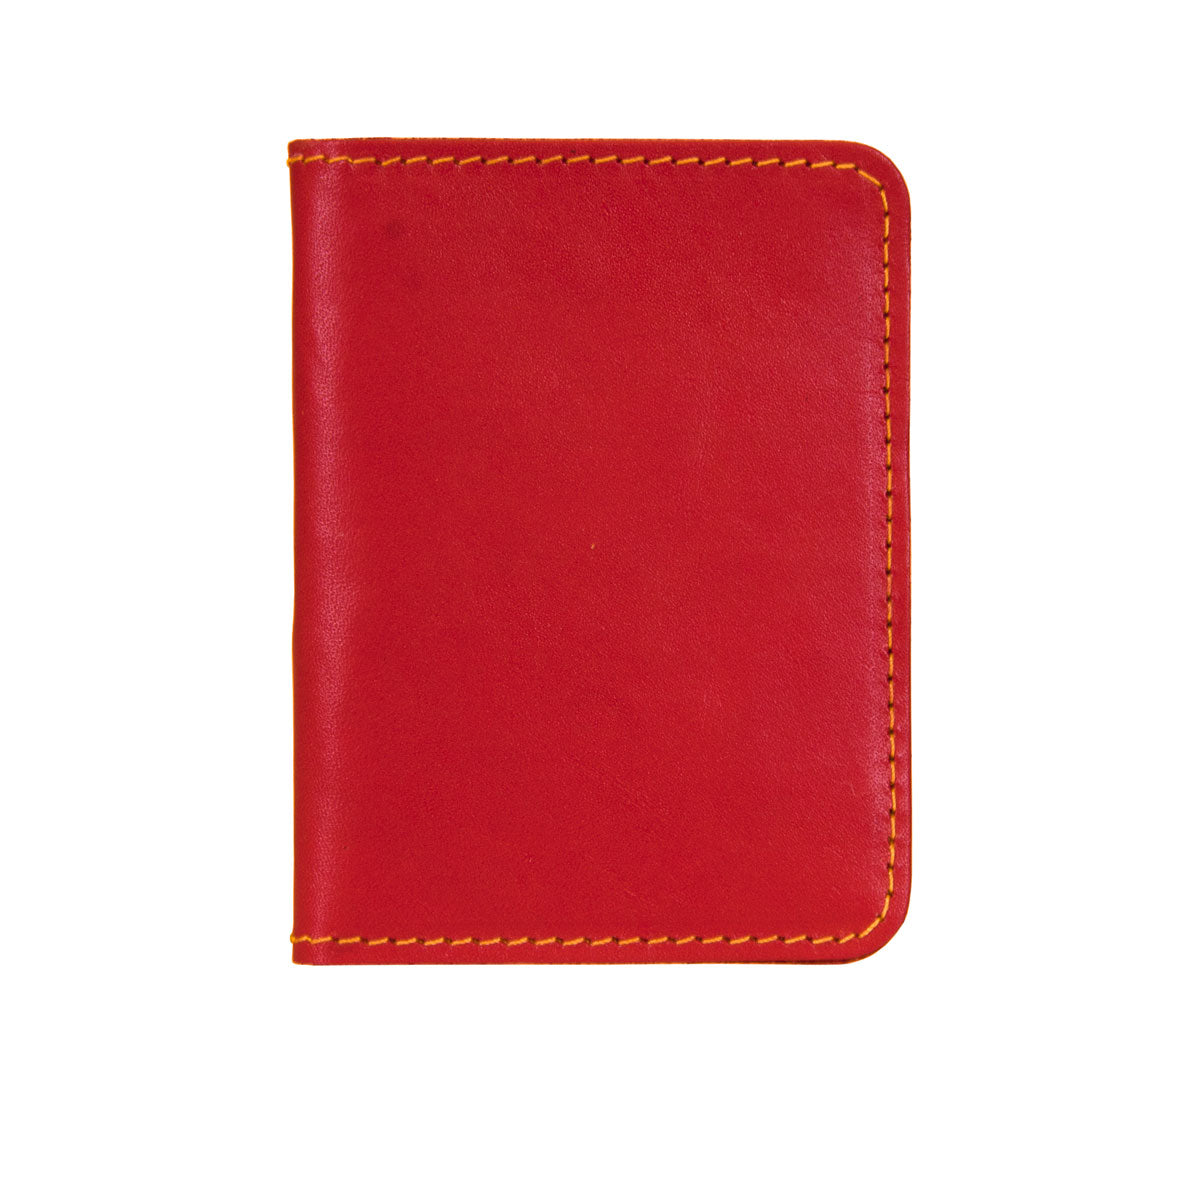 Handmade Leather Wallet - Red